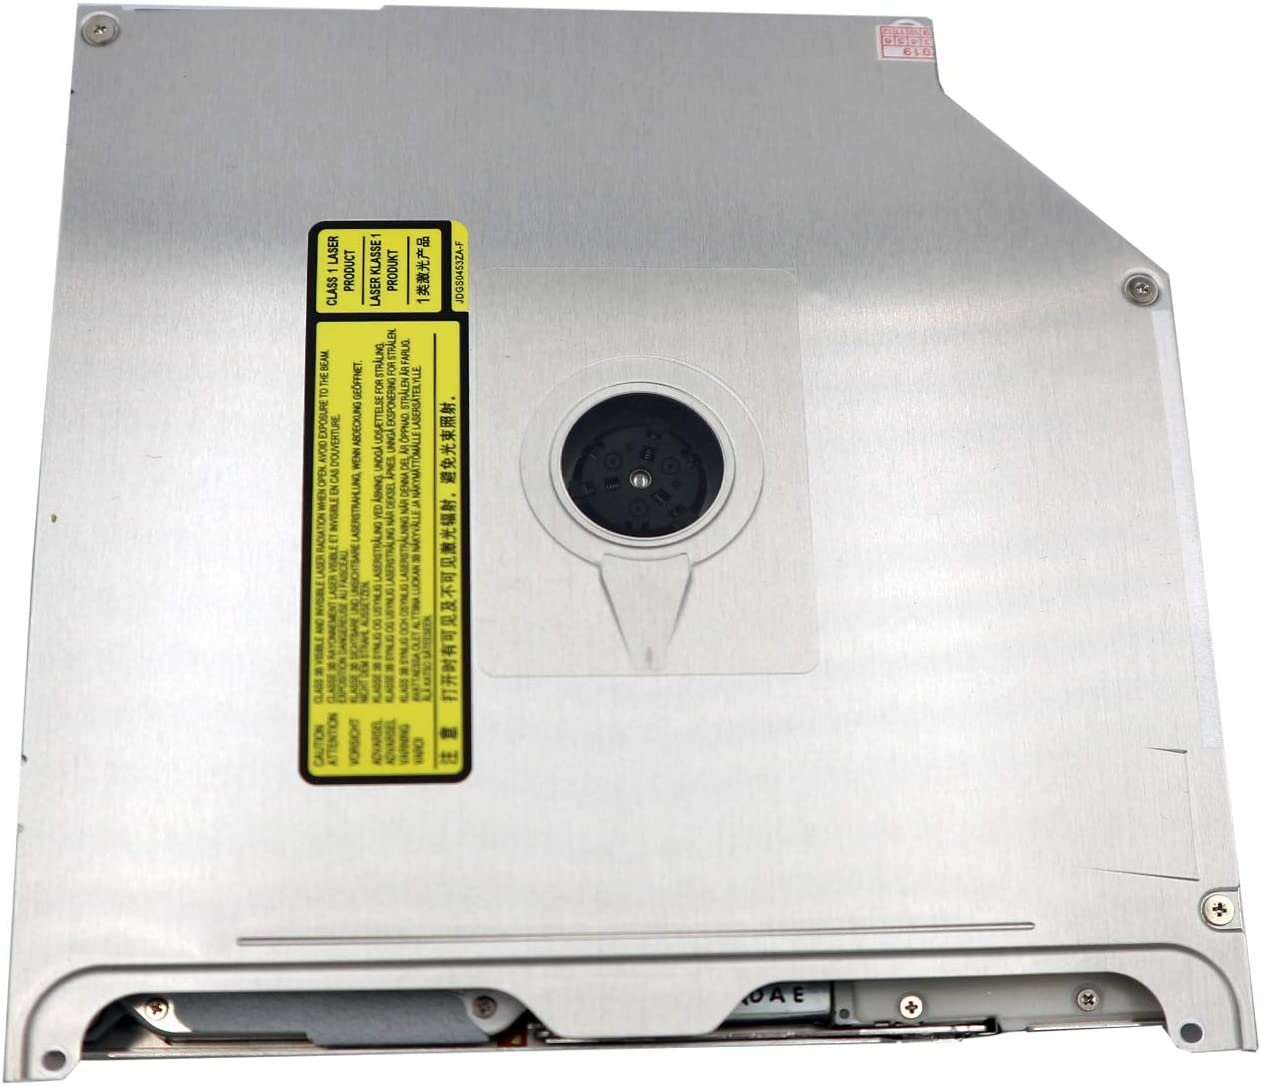 "UJ8A8 Sata Slot in 678-0611C Super Multi DVD-RW Burner CD Drive for MacBook Pro 15.4"" A1286 MacBook Pro 13"" A1278 2011 MC724LL"